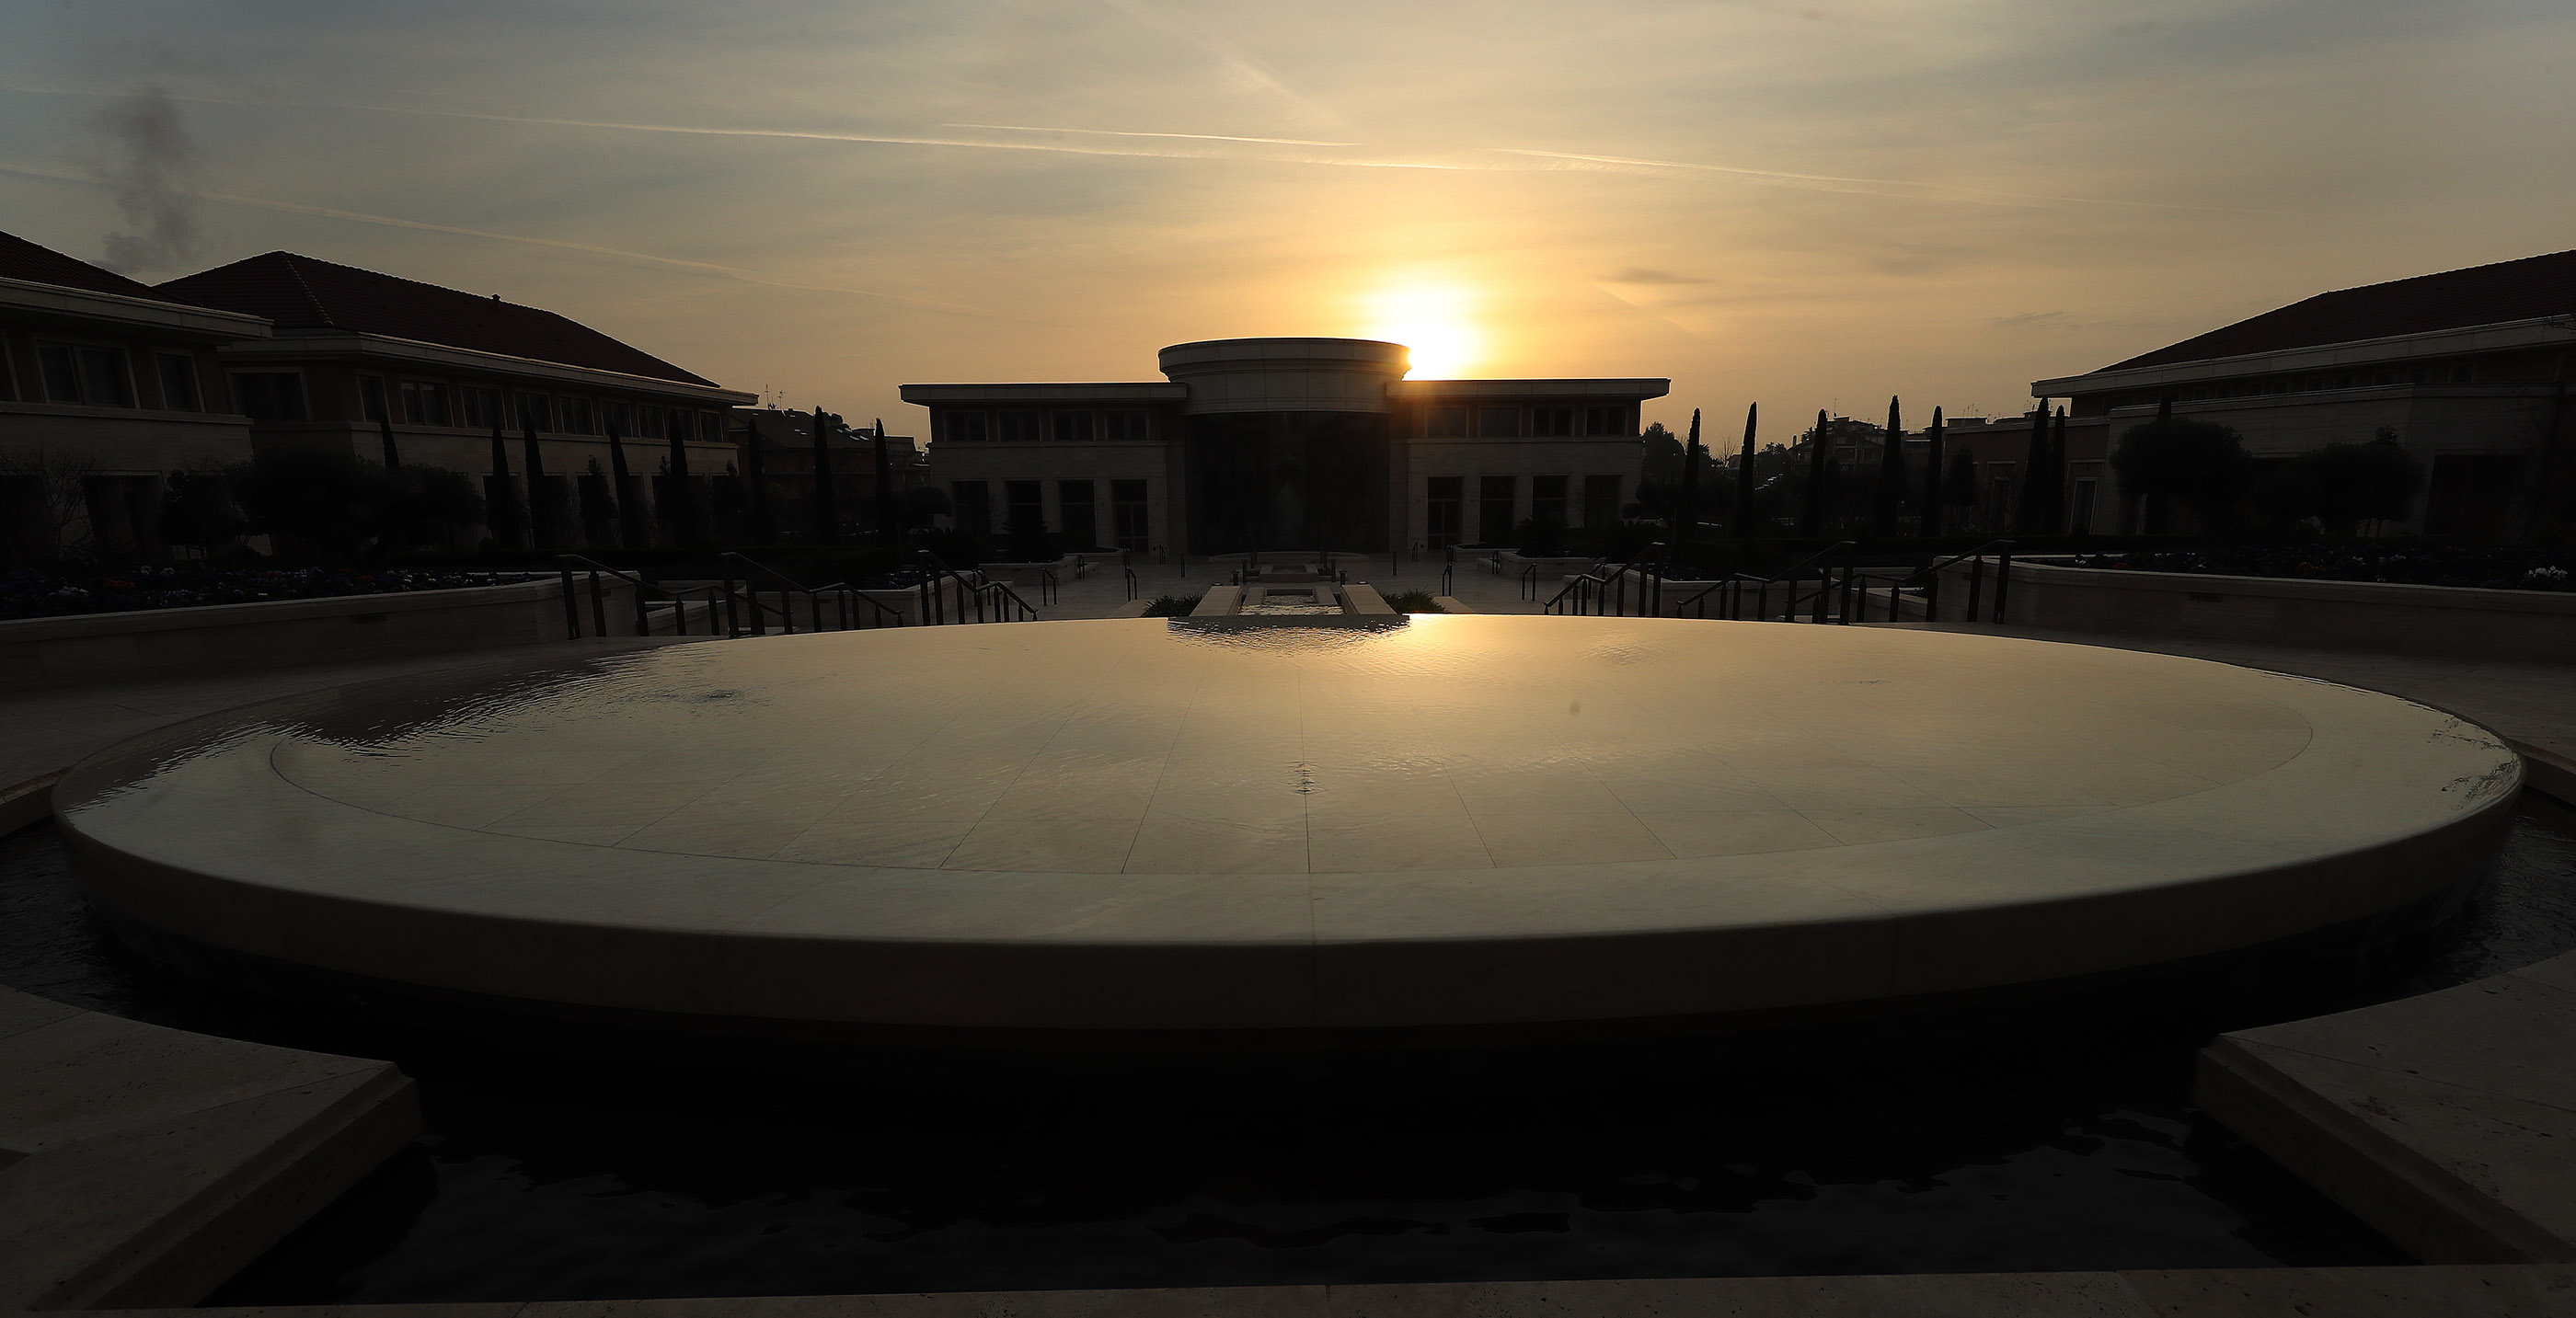 The water pond reflects the morning light near the Rome Italy Temple Visitors' Center of The Church of Jesus Christ of Latter-day Saints in Rome, Italy, on Friday, March 8, 2019.